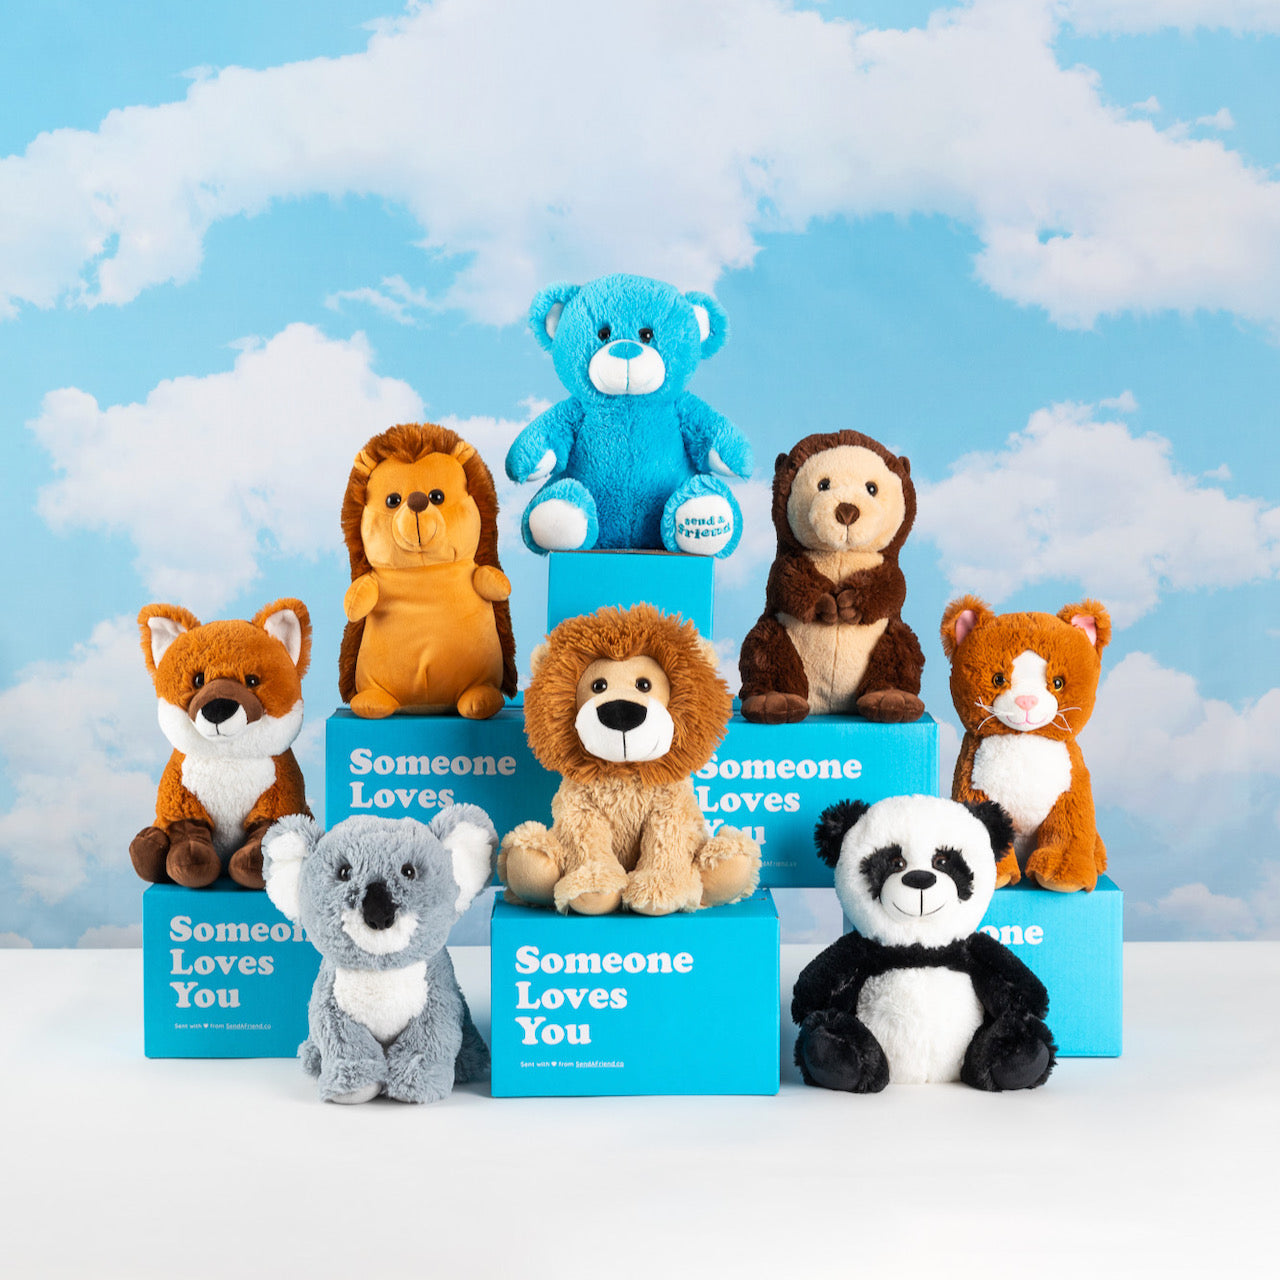 An array of stuffed animals along with blue gift boxes from SendAFriend back dropped by a background with clouds painted.